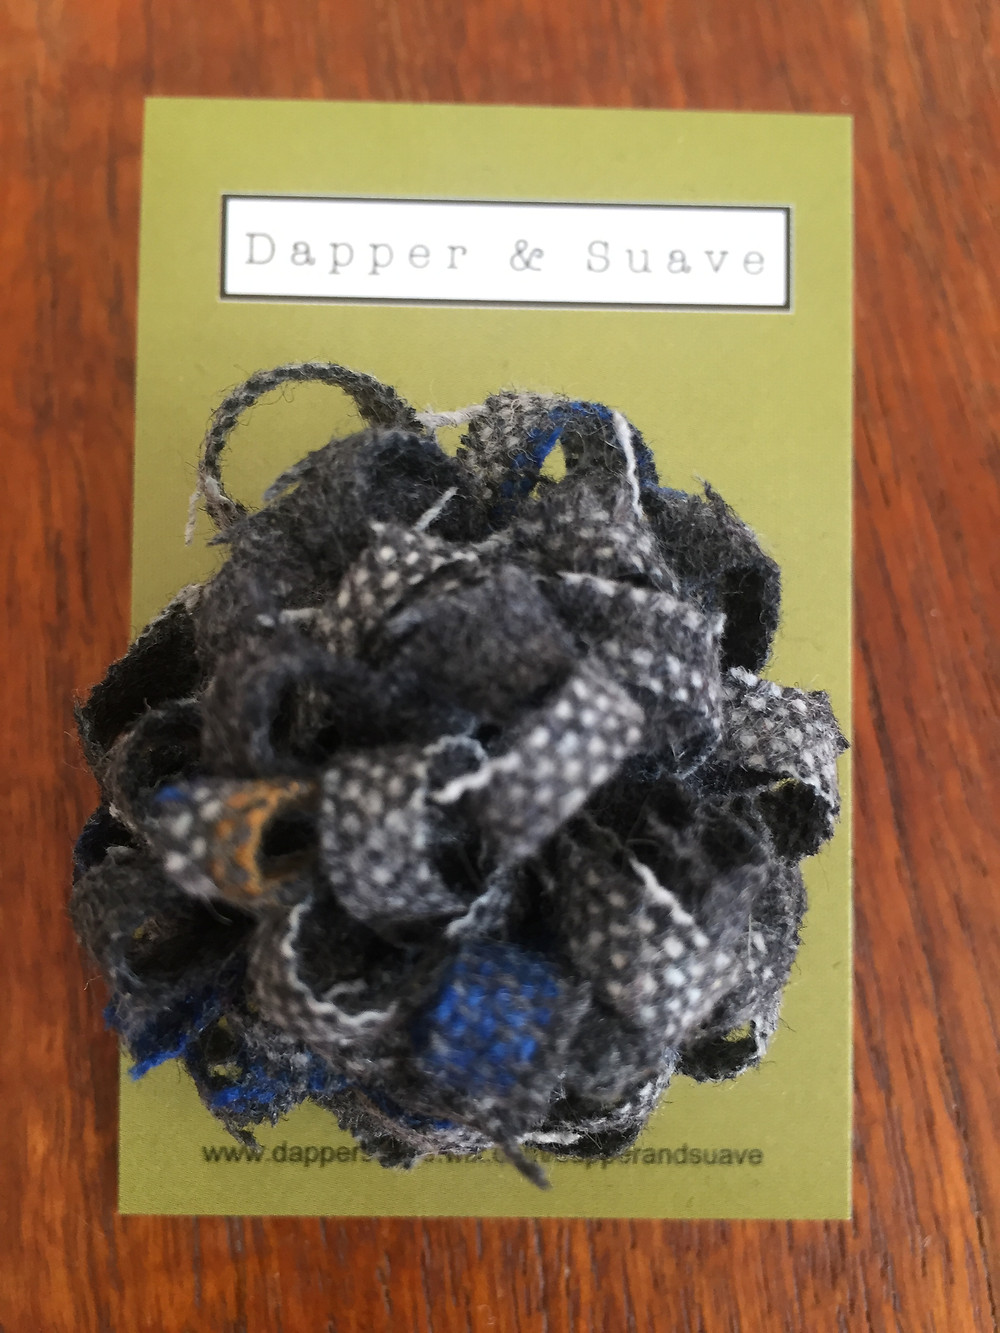 Dapper & Suave Tweed Lapel Pin